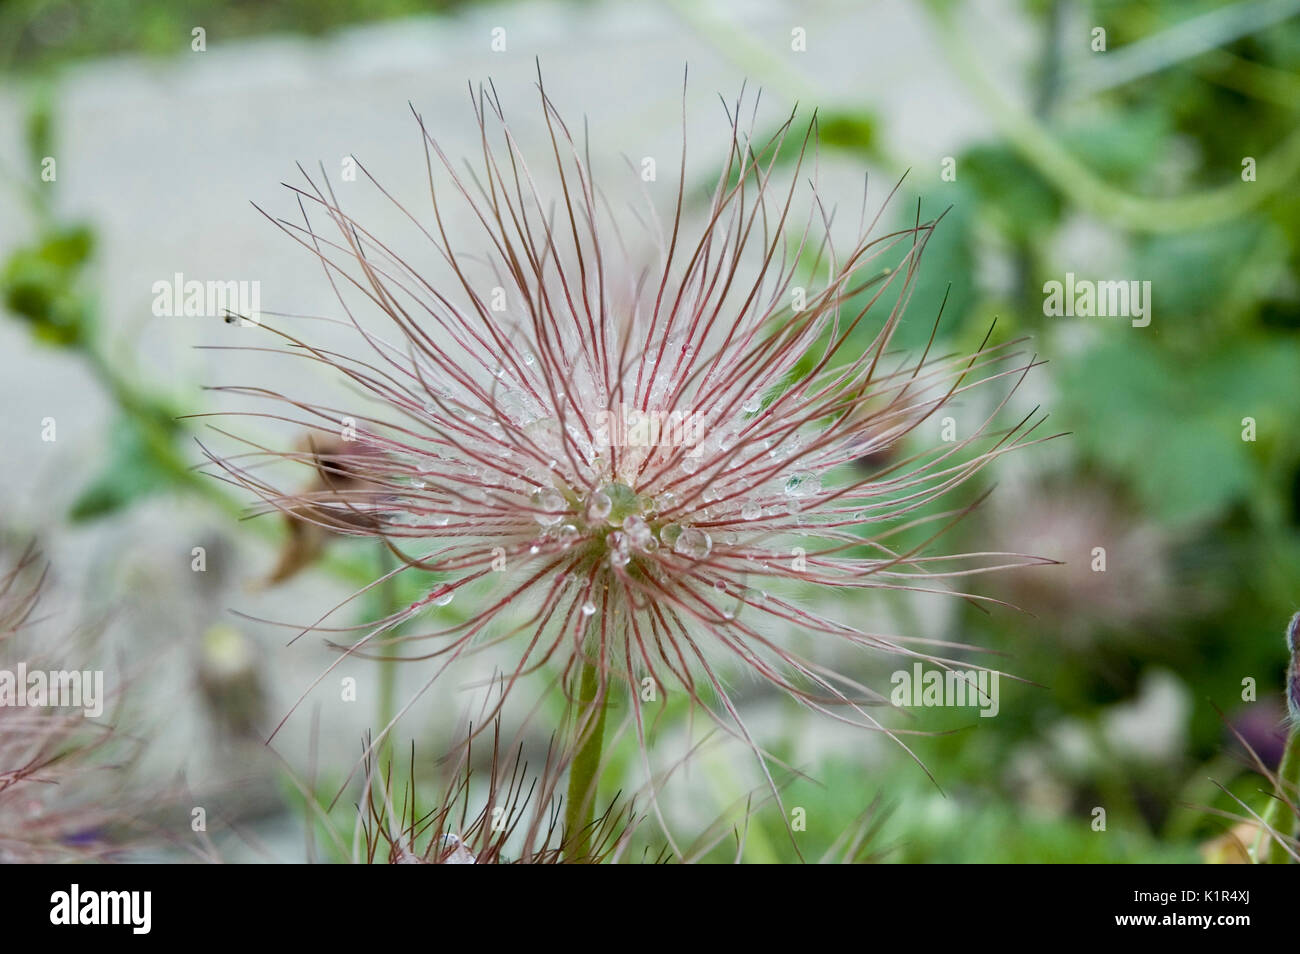 plumed seed head of a pasque flower - Stock Image